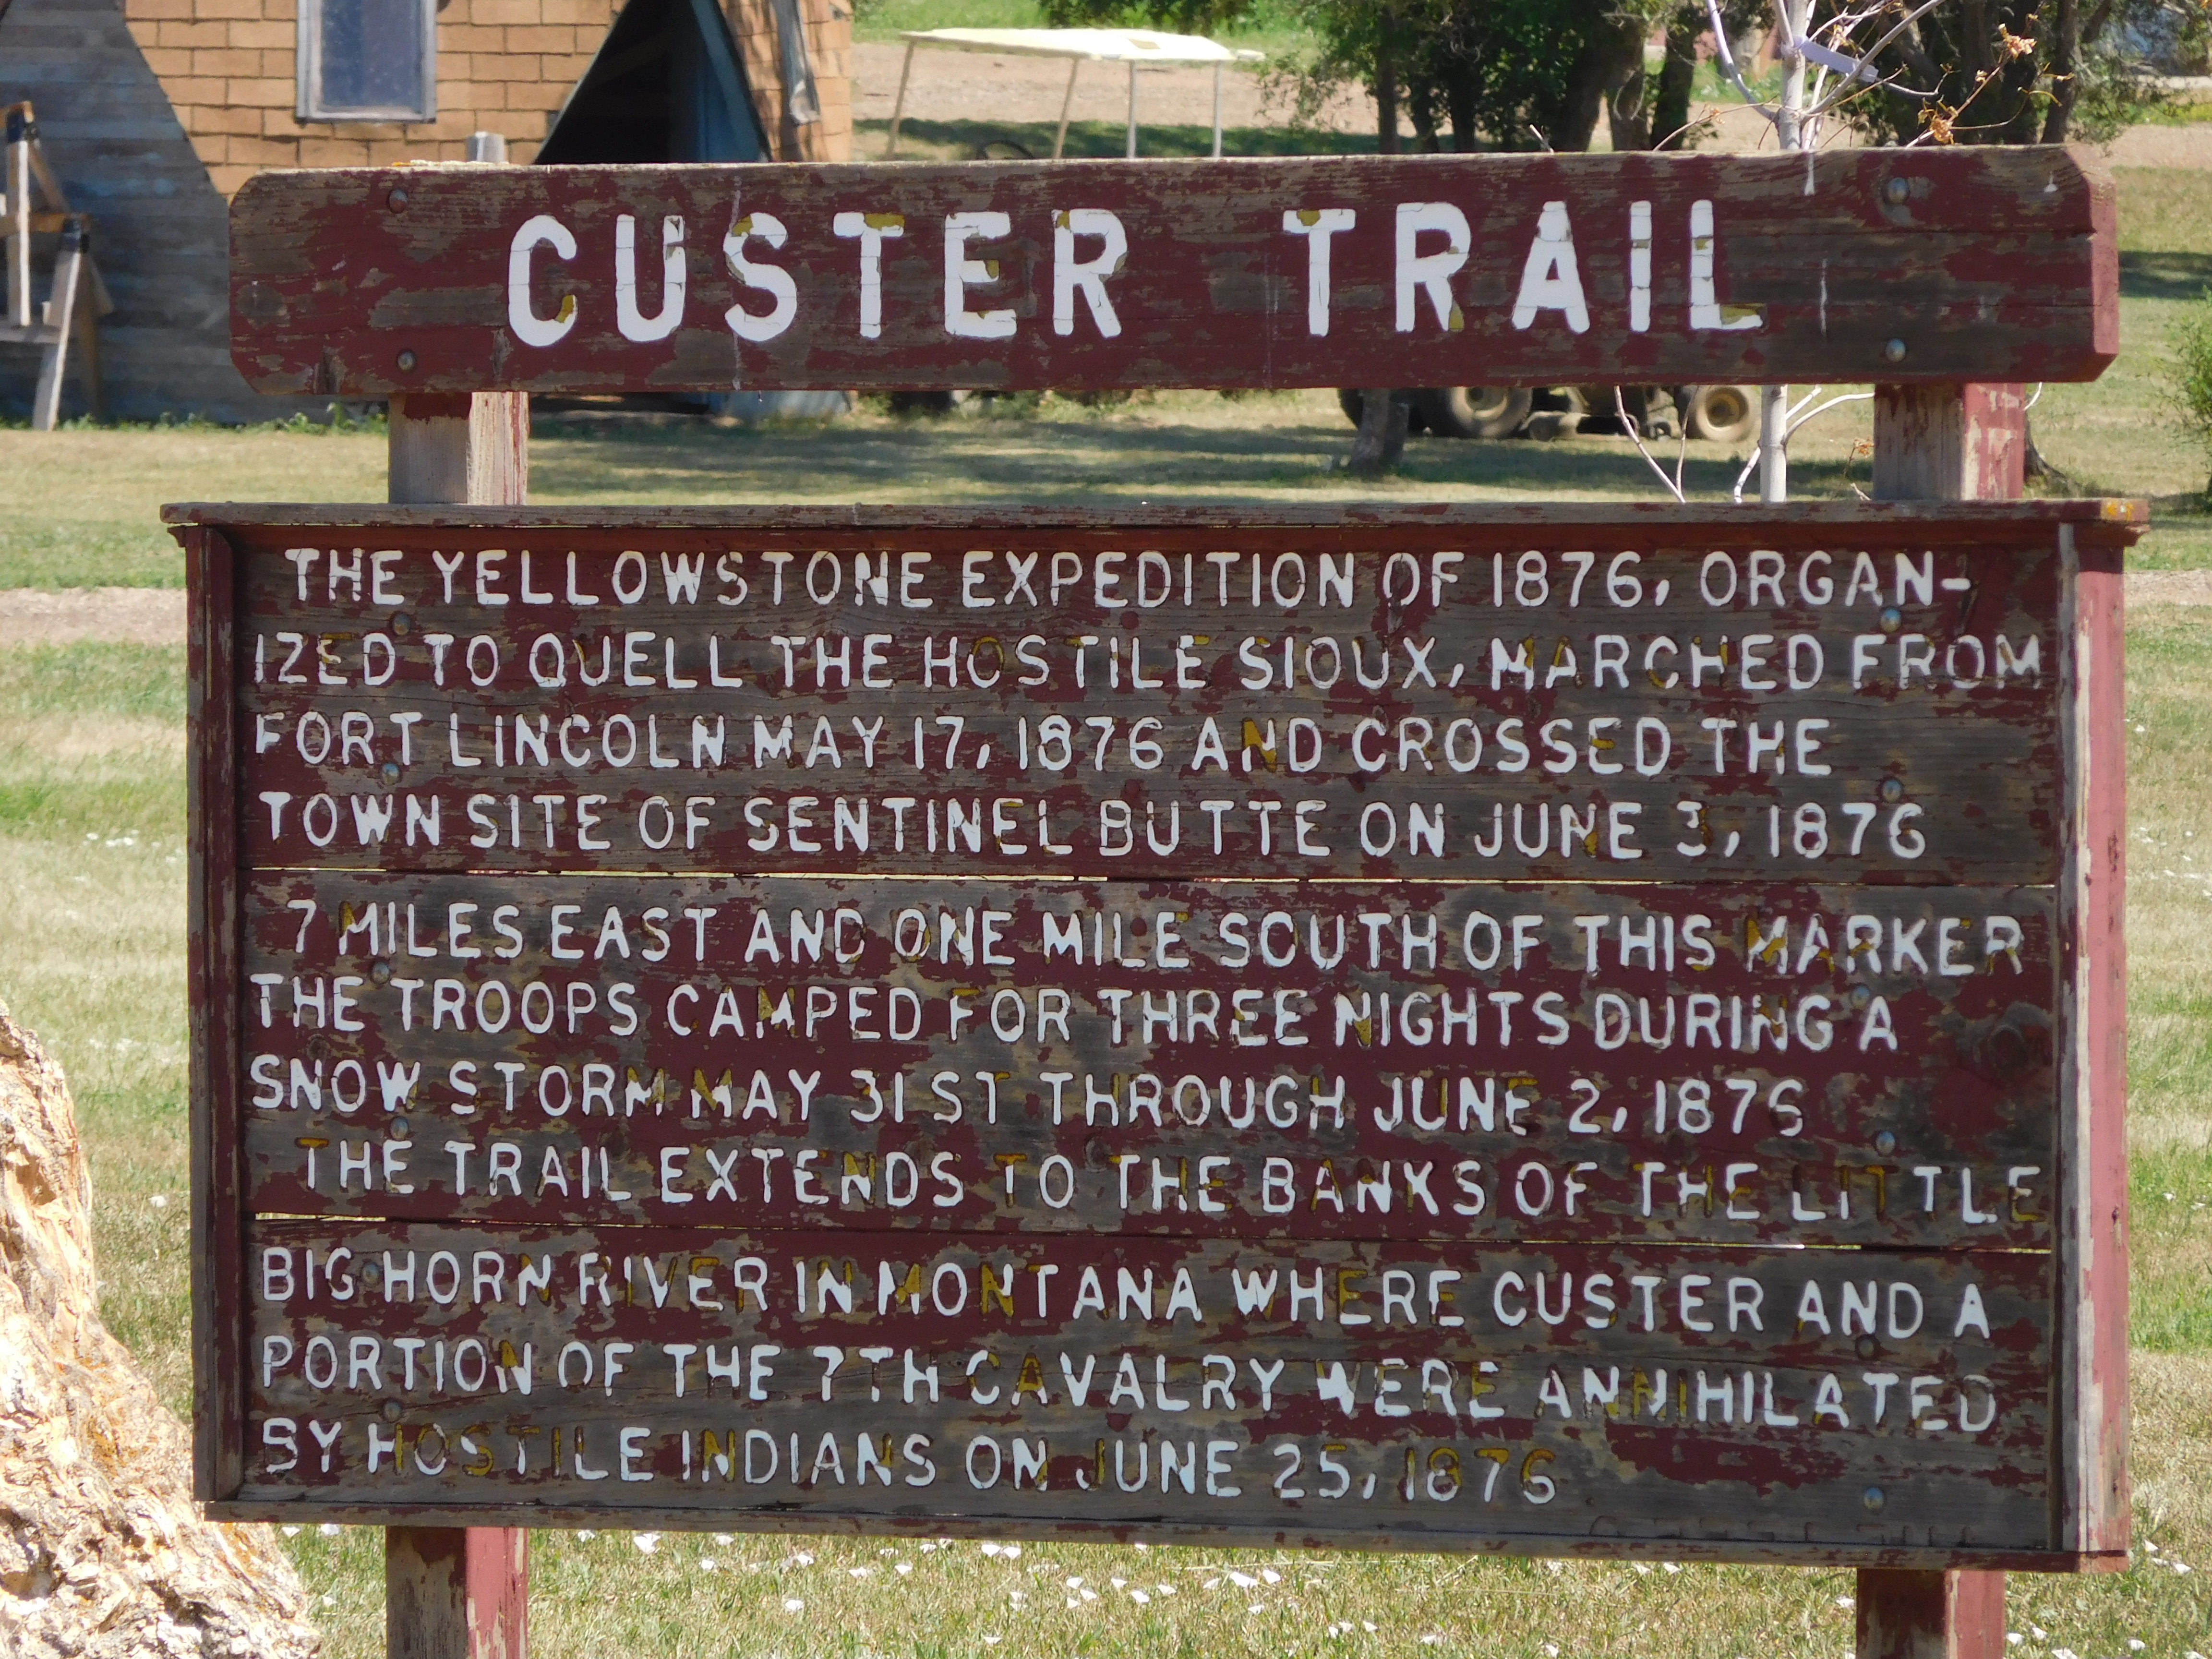 After following Lewis and Clark I am now on Custers Trail